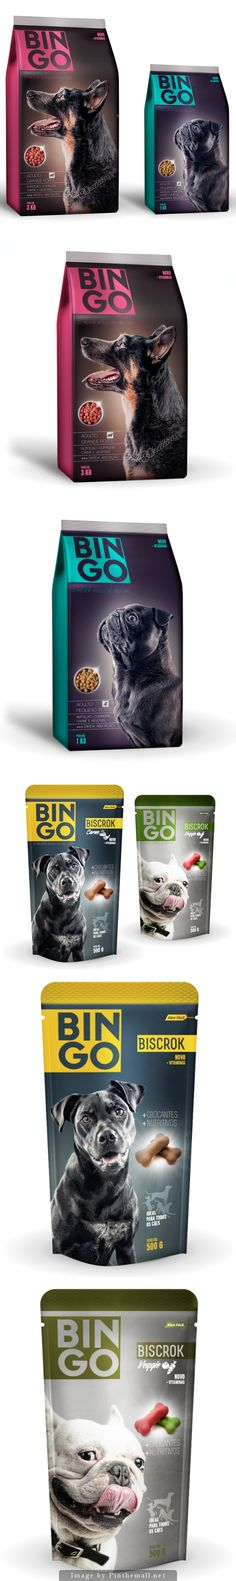 BINGO dog food celebrating National Dog Day with some favs PD